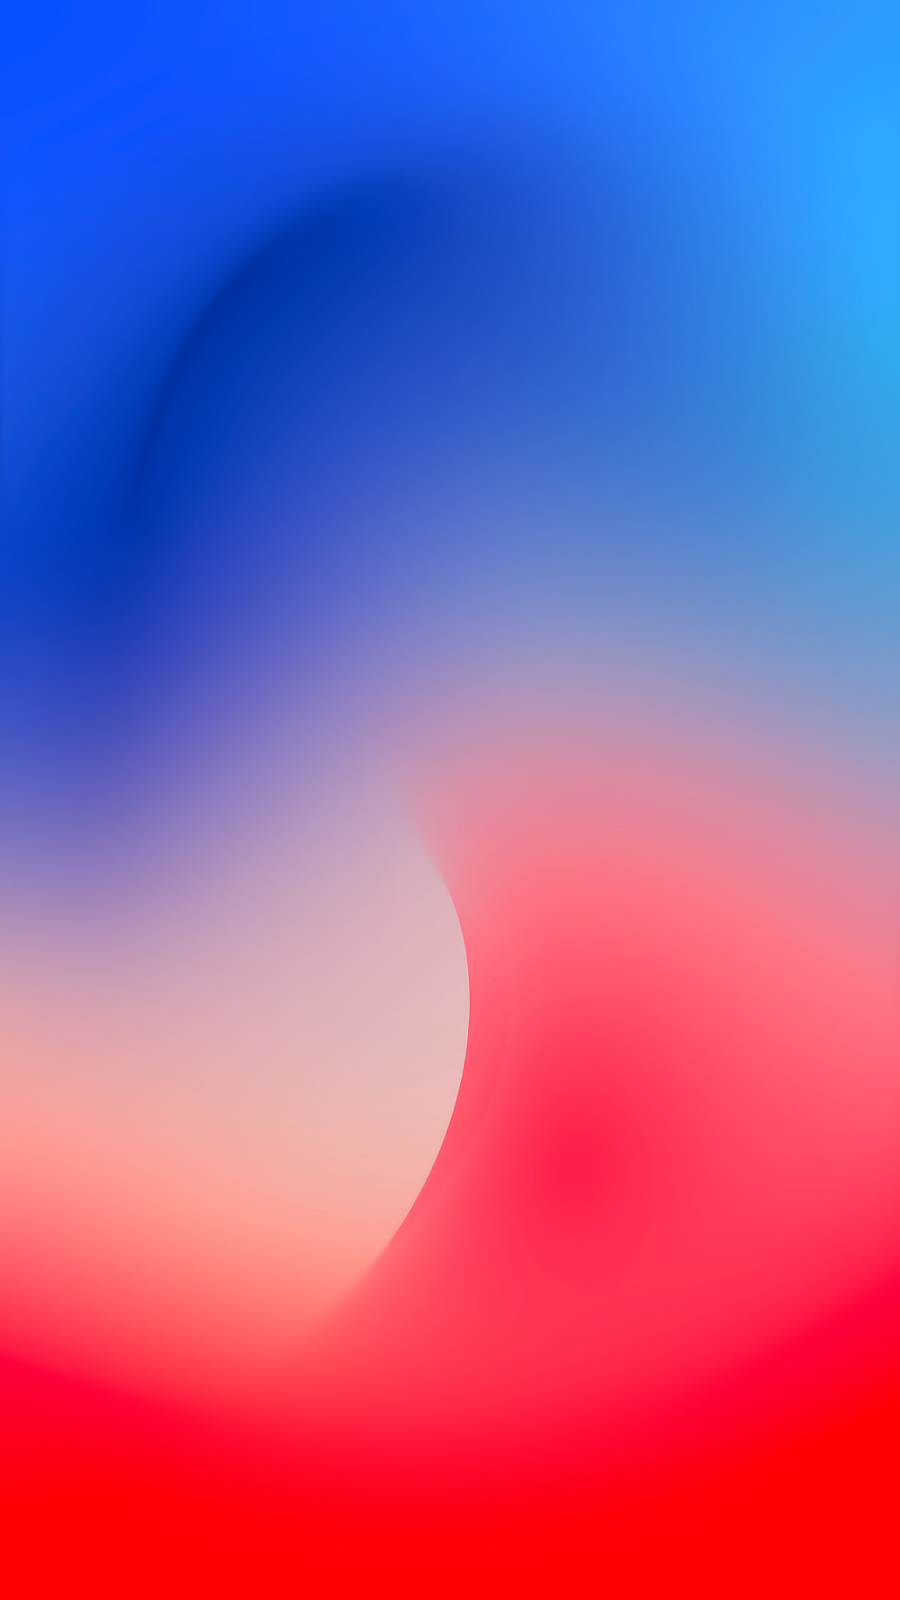 Fluid Blue And Red By Ar72014 Iphone Wallpaper Sky Iphone Homescreen Wallpaper Phone Wallpaper Patterns